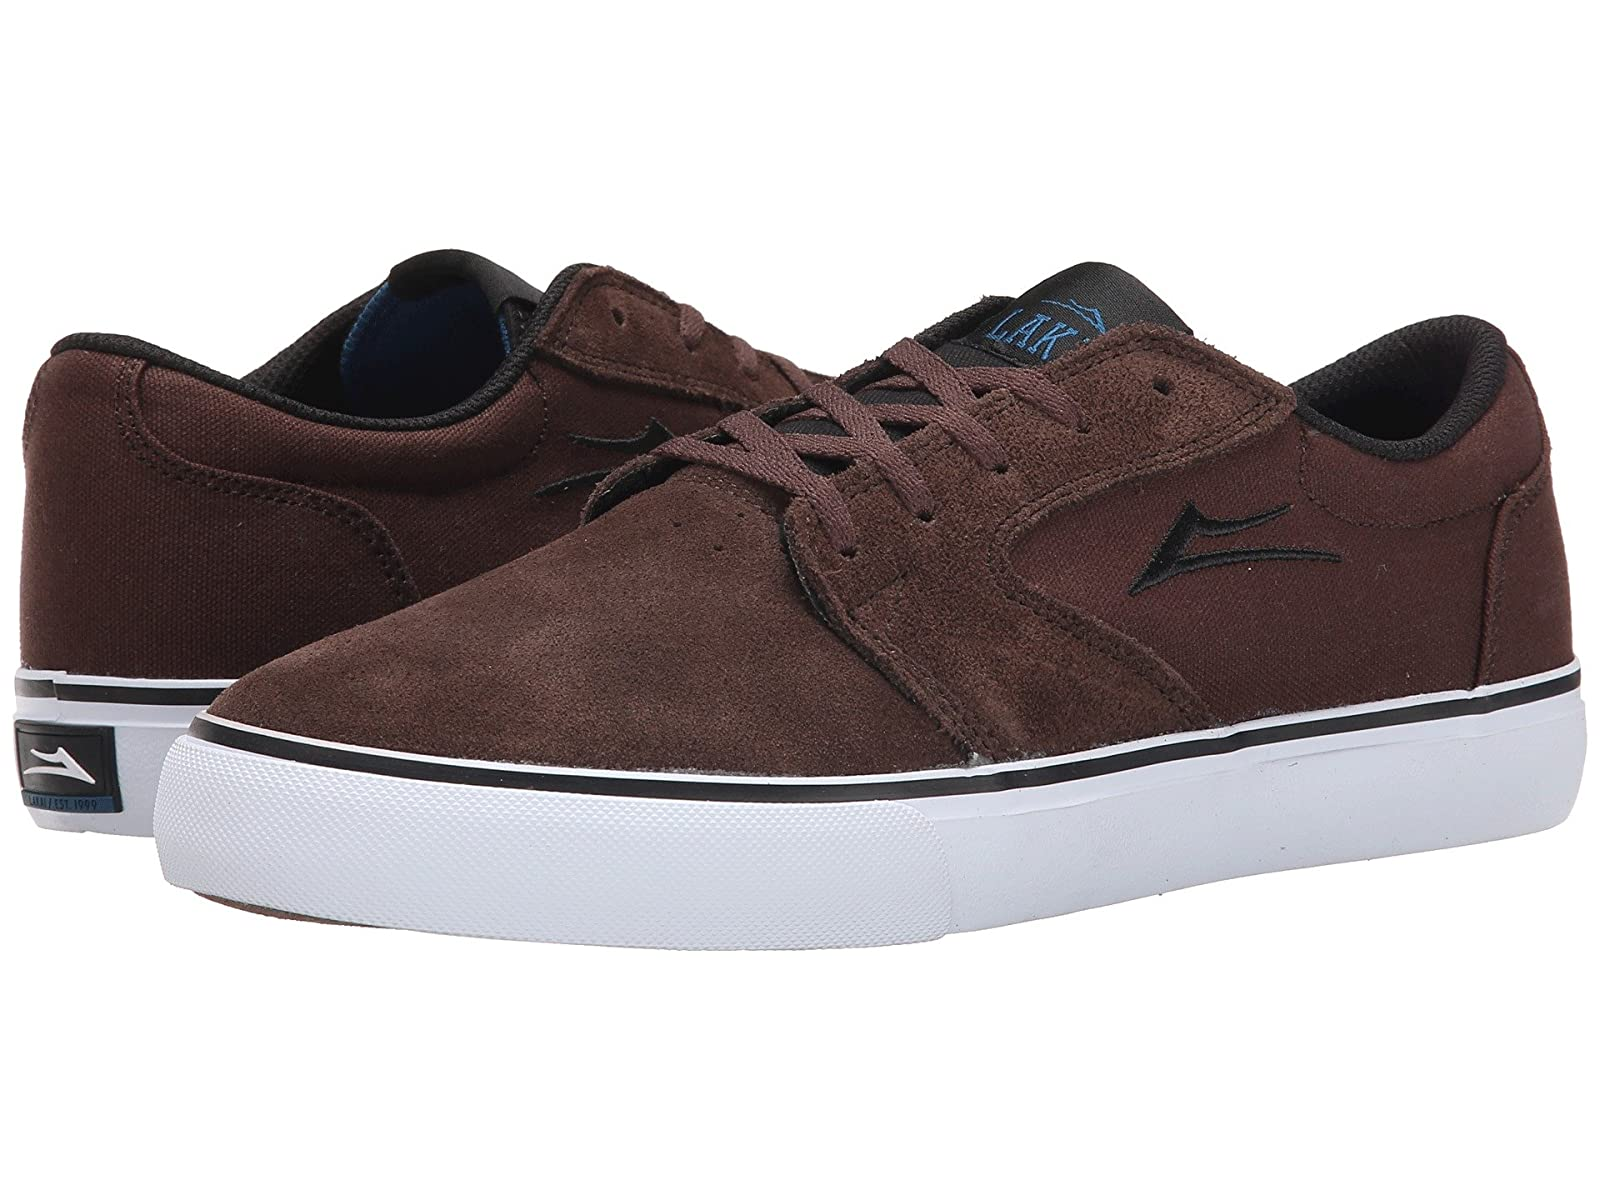 Lakai FuraCheap and distinctive eye-catching shoes